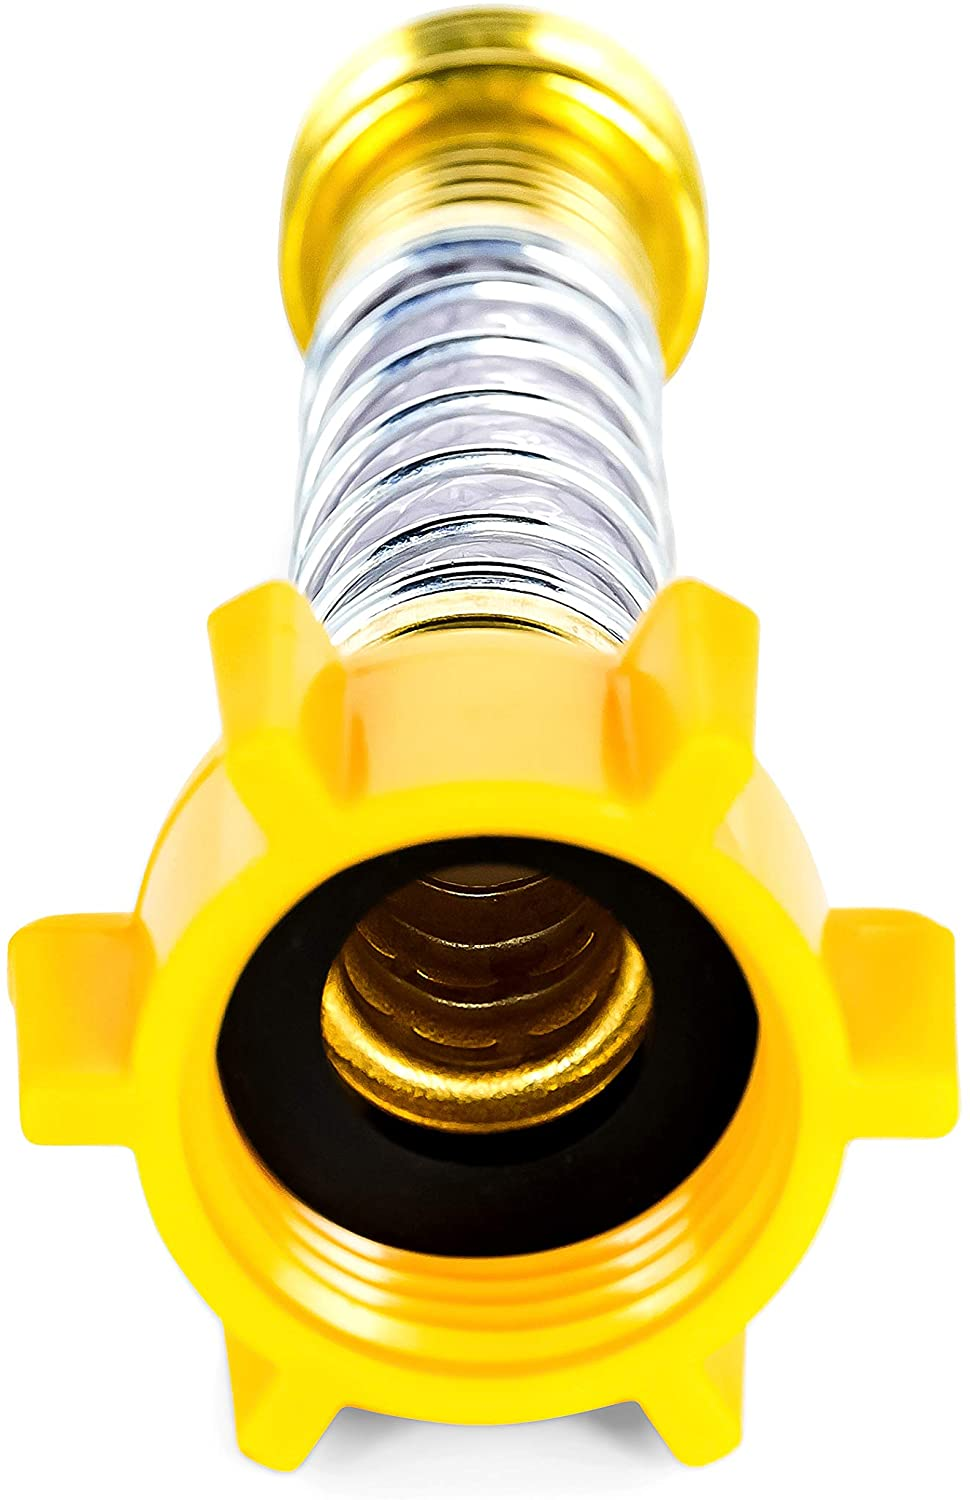 RV water garden flexible drinking hose protector spring fitting  CAMCO 22703